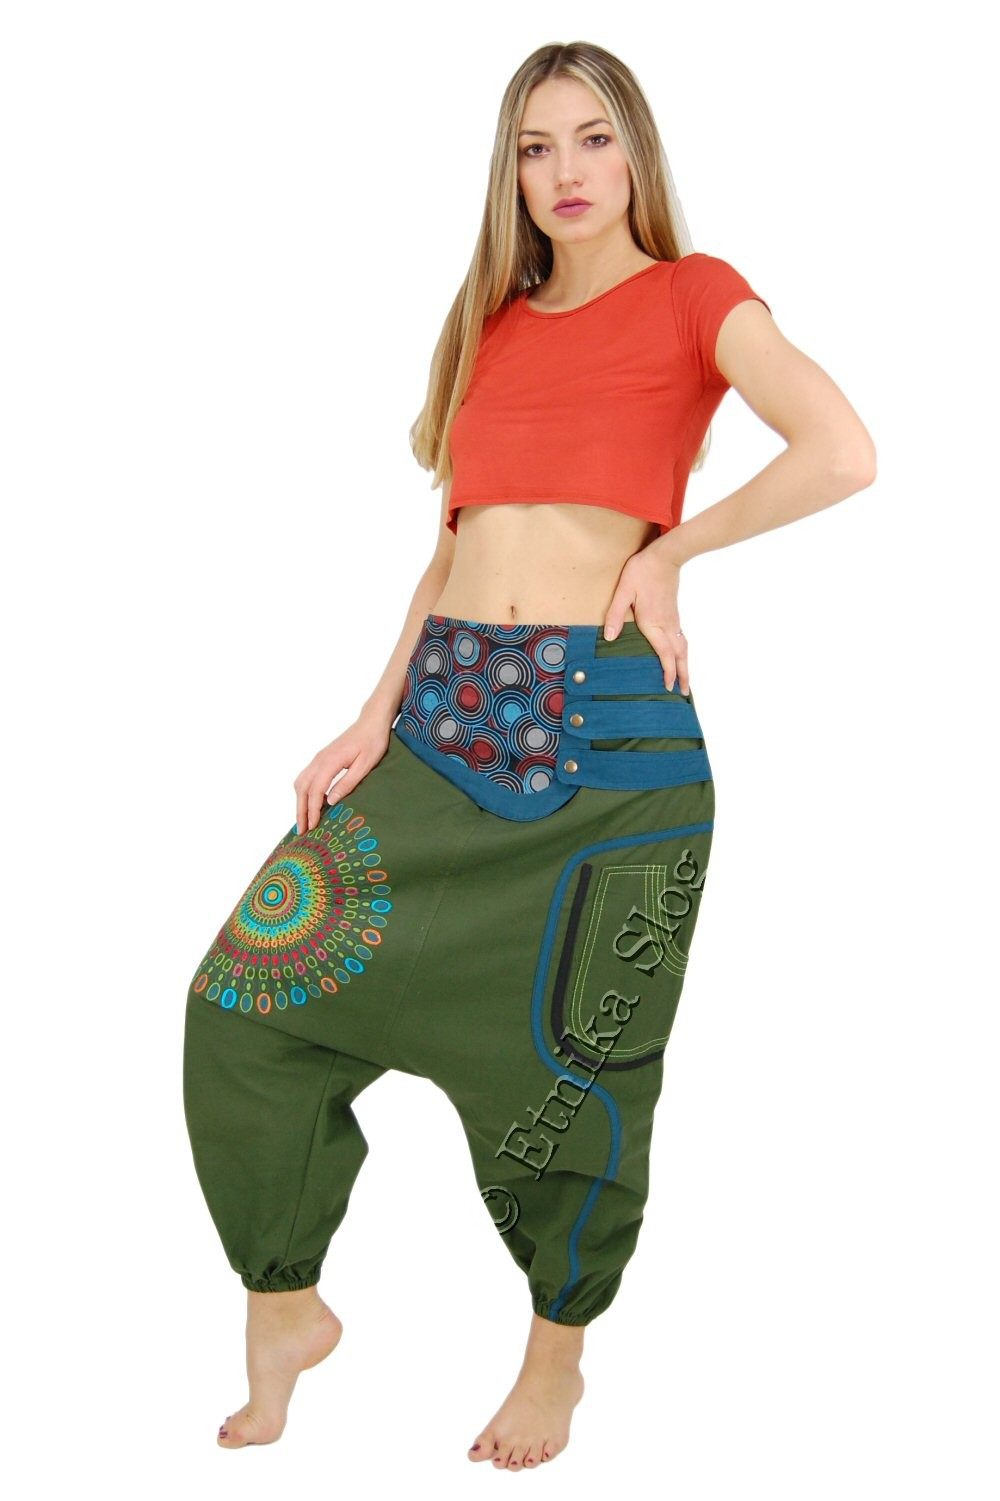 TROUSERS - COTTON AB-BSP06 - Oriente Import S.r.l.